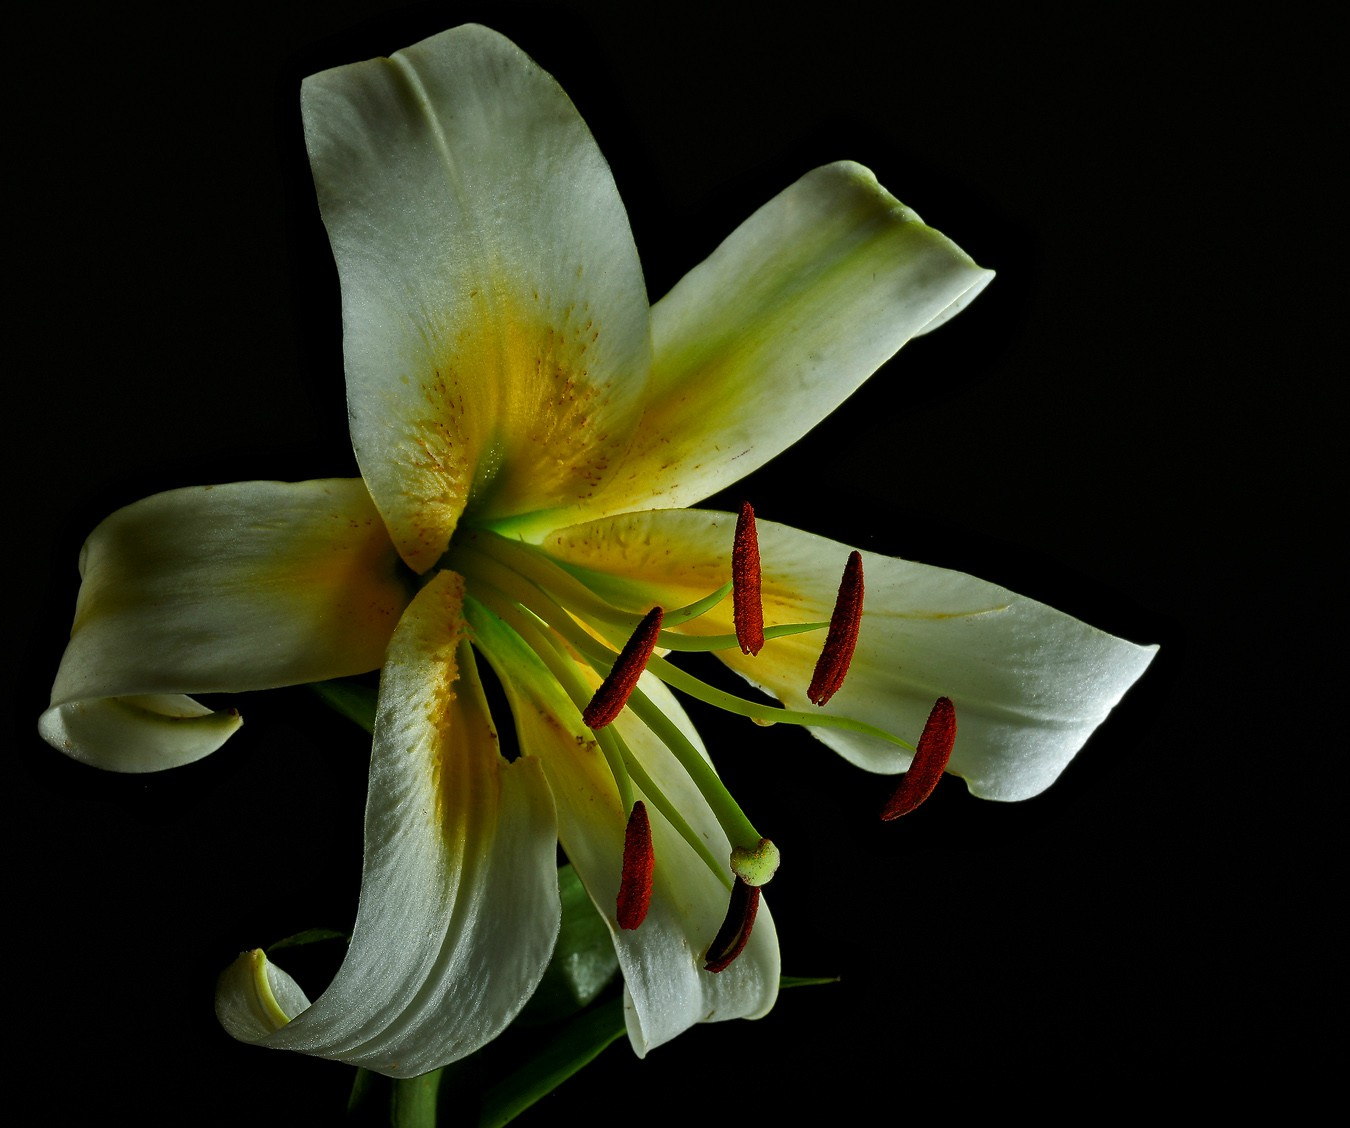 white lily img aw author sava gregory and verena